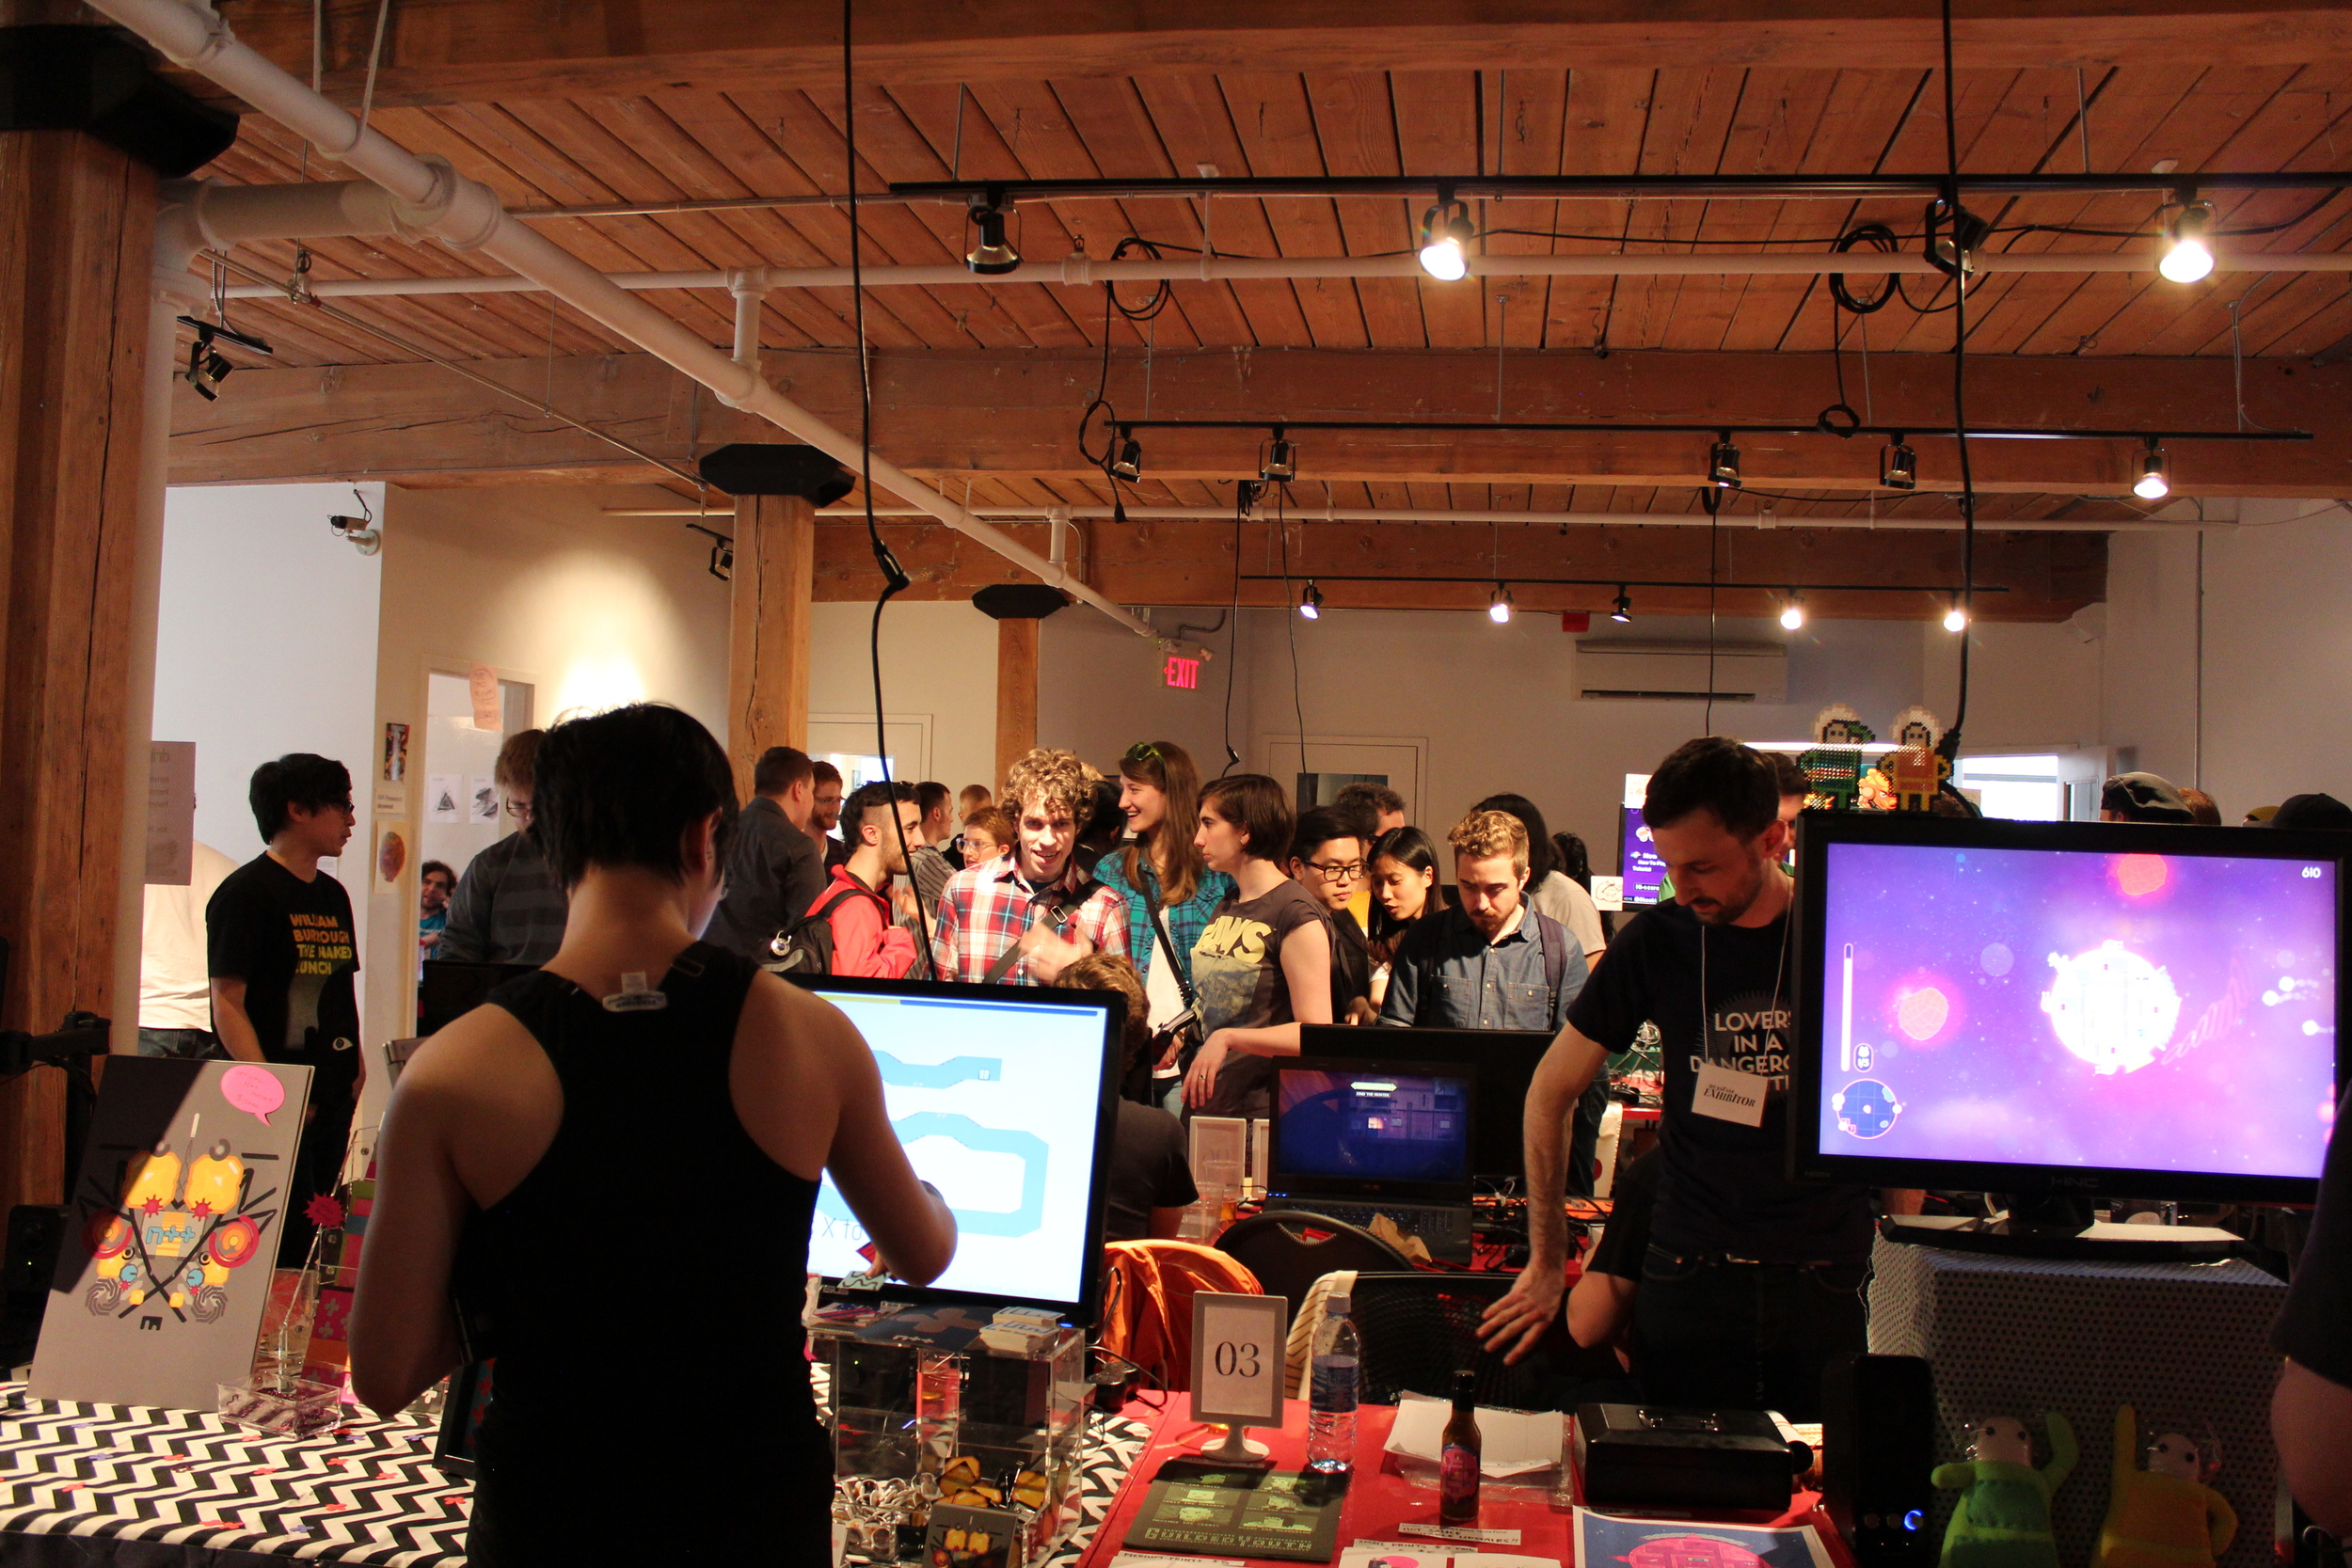 Welcome to the Bit Bazaar at the Bento Miso on May 10. Mare Shepard shows off N++ right next to the entrance.